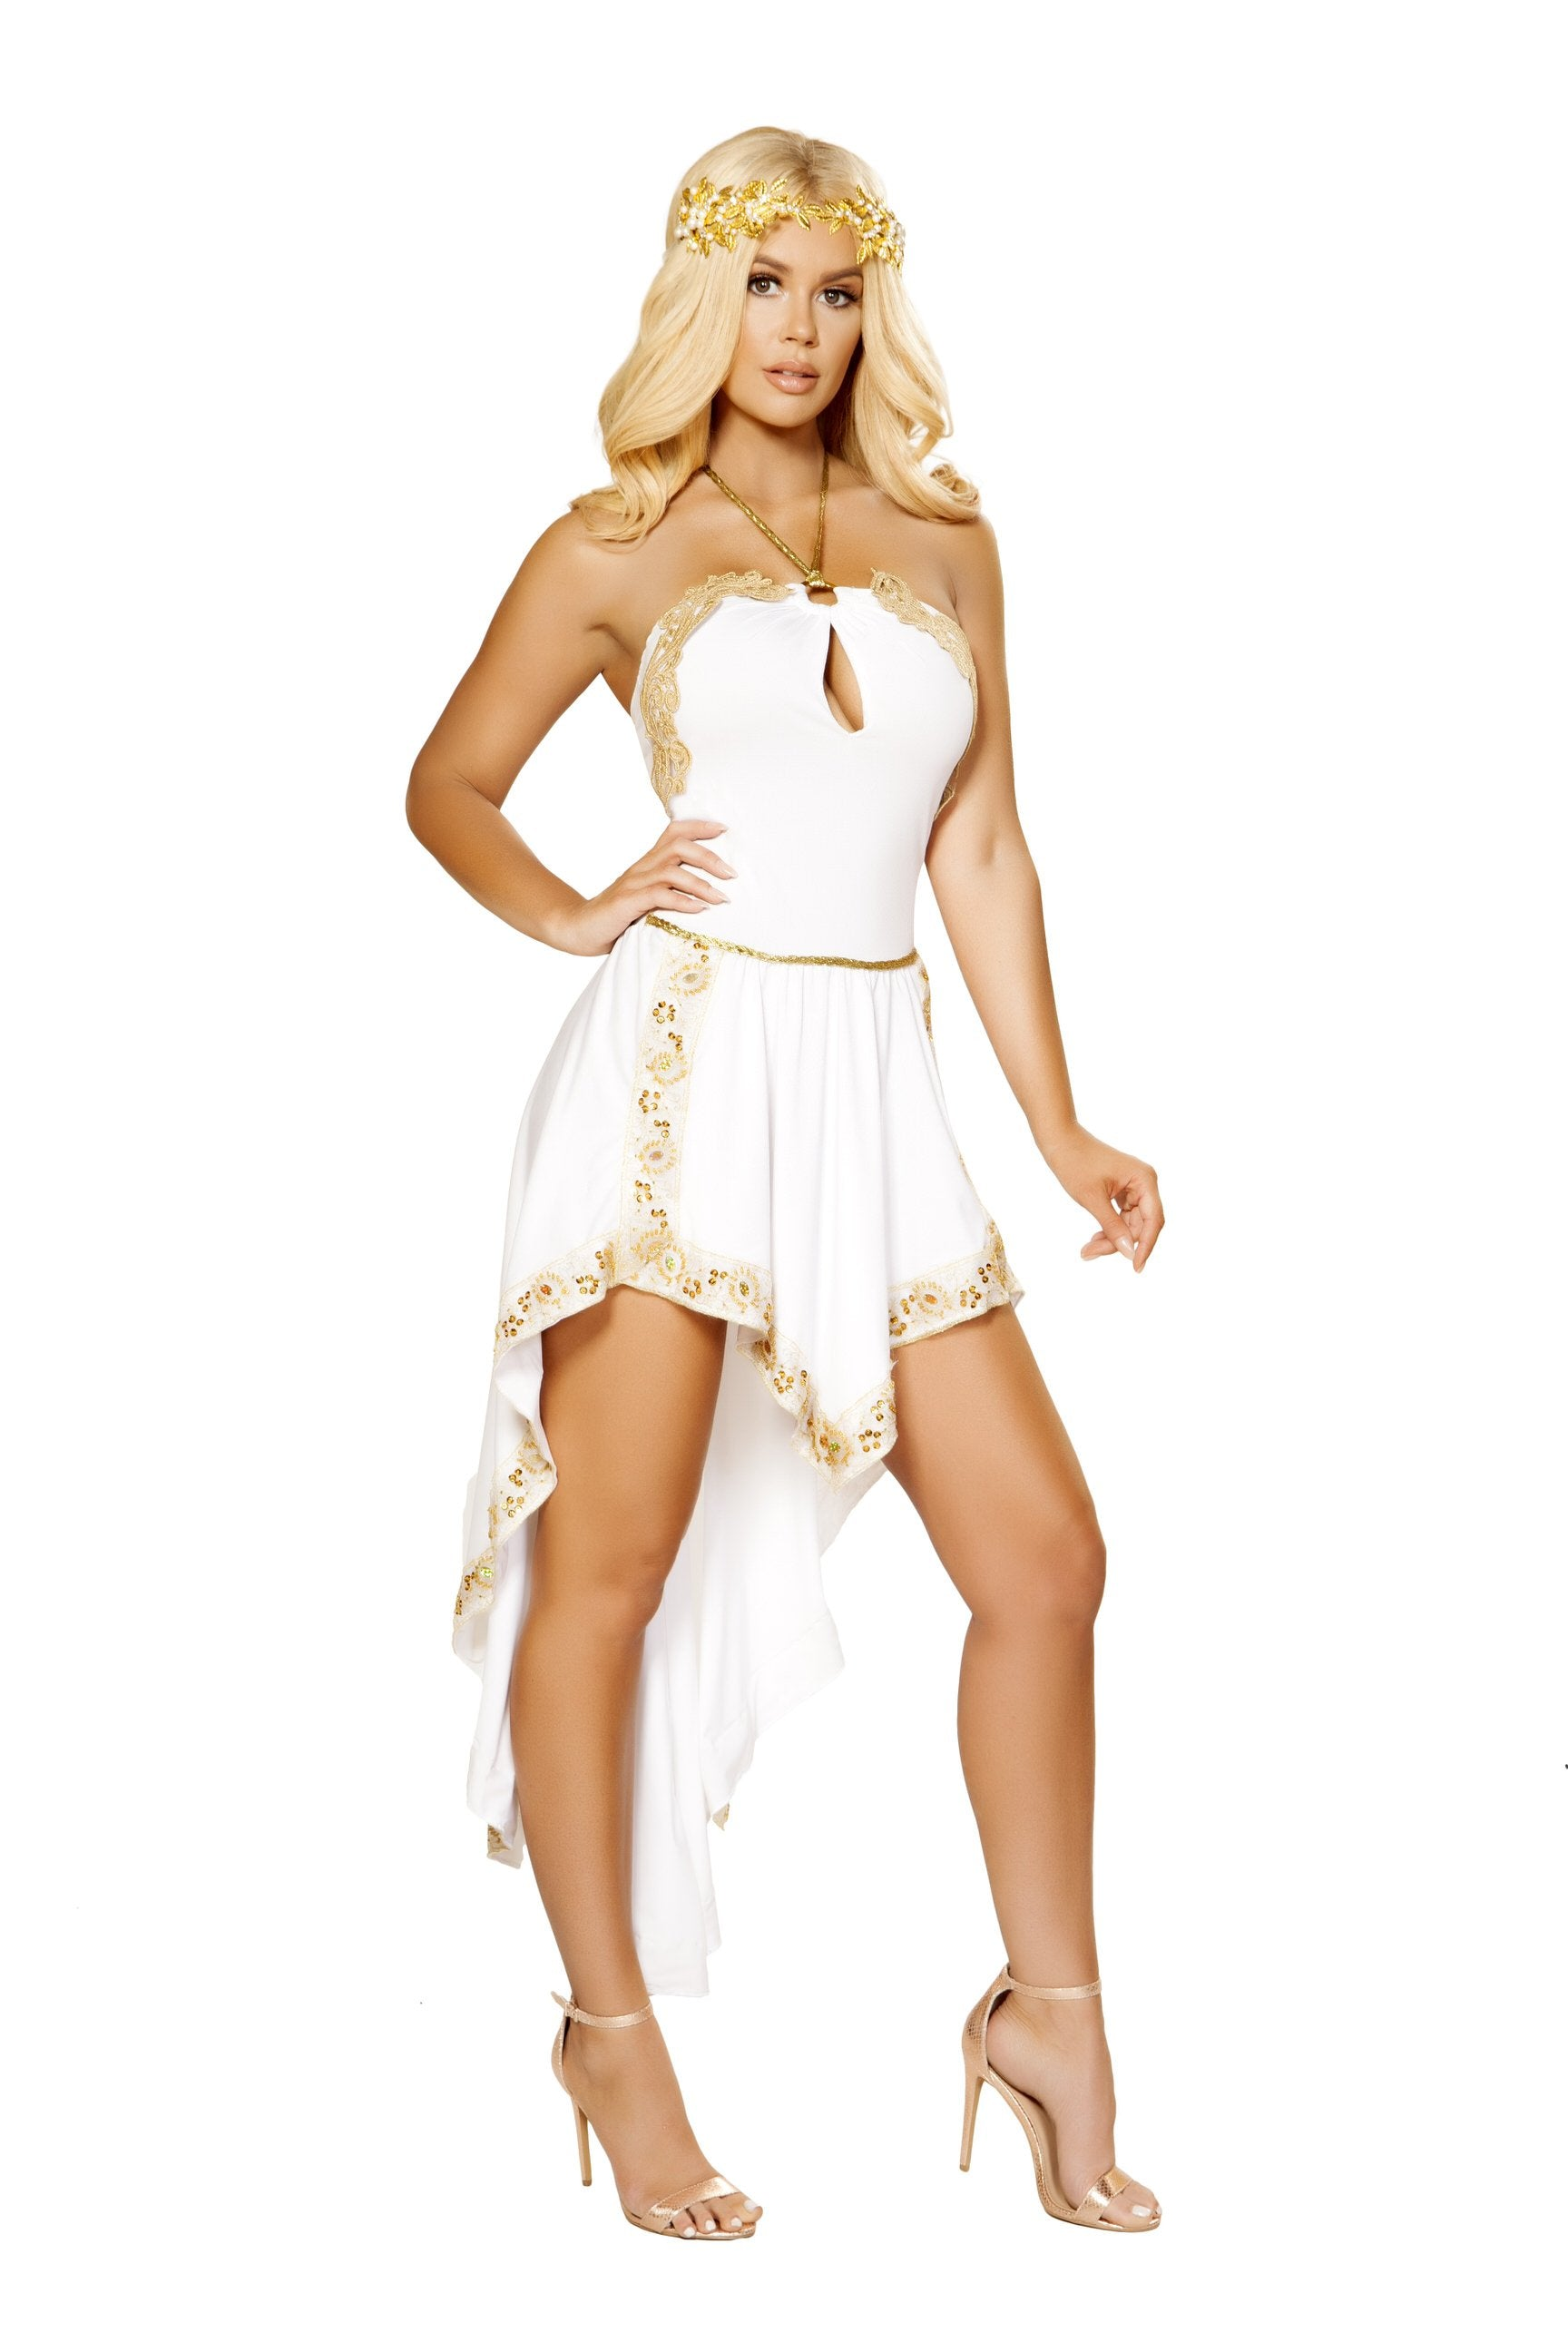 Buy 1pc Golden Goddess from Rave Fix for $79.99 with Same Day Shipping Designed by Roma Costume 4877-AS-S